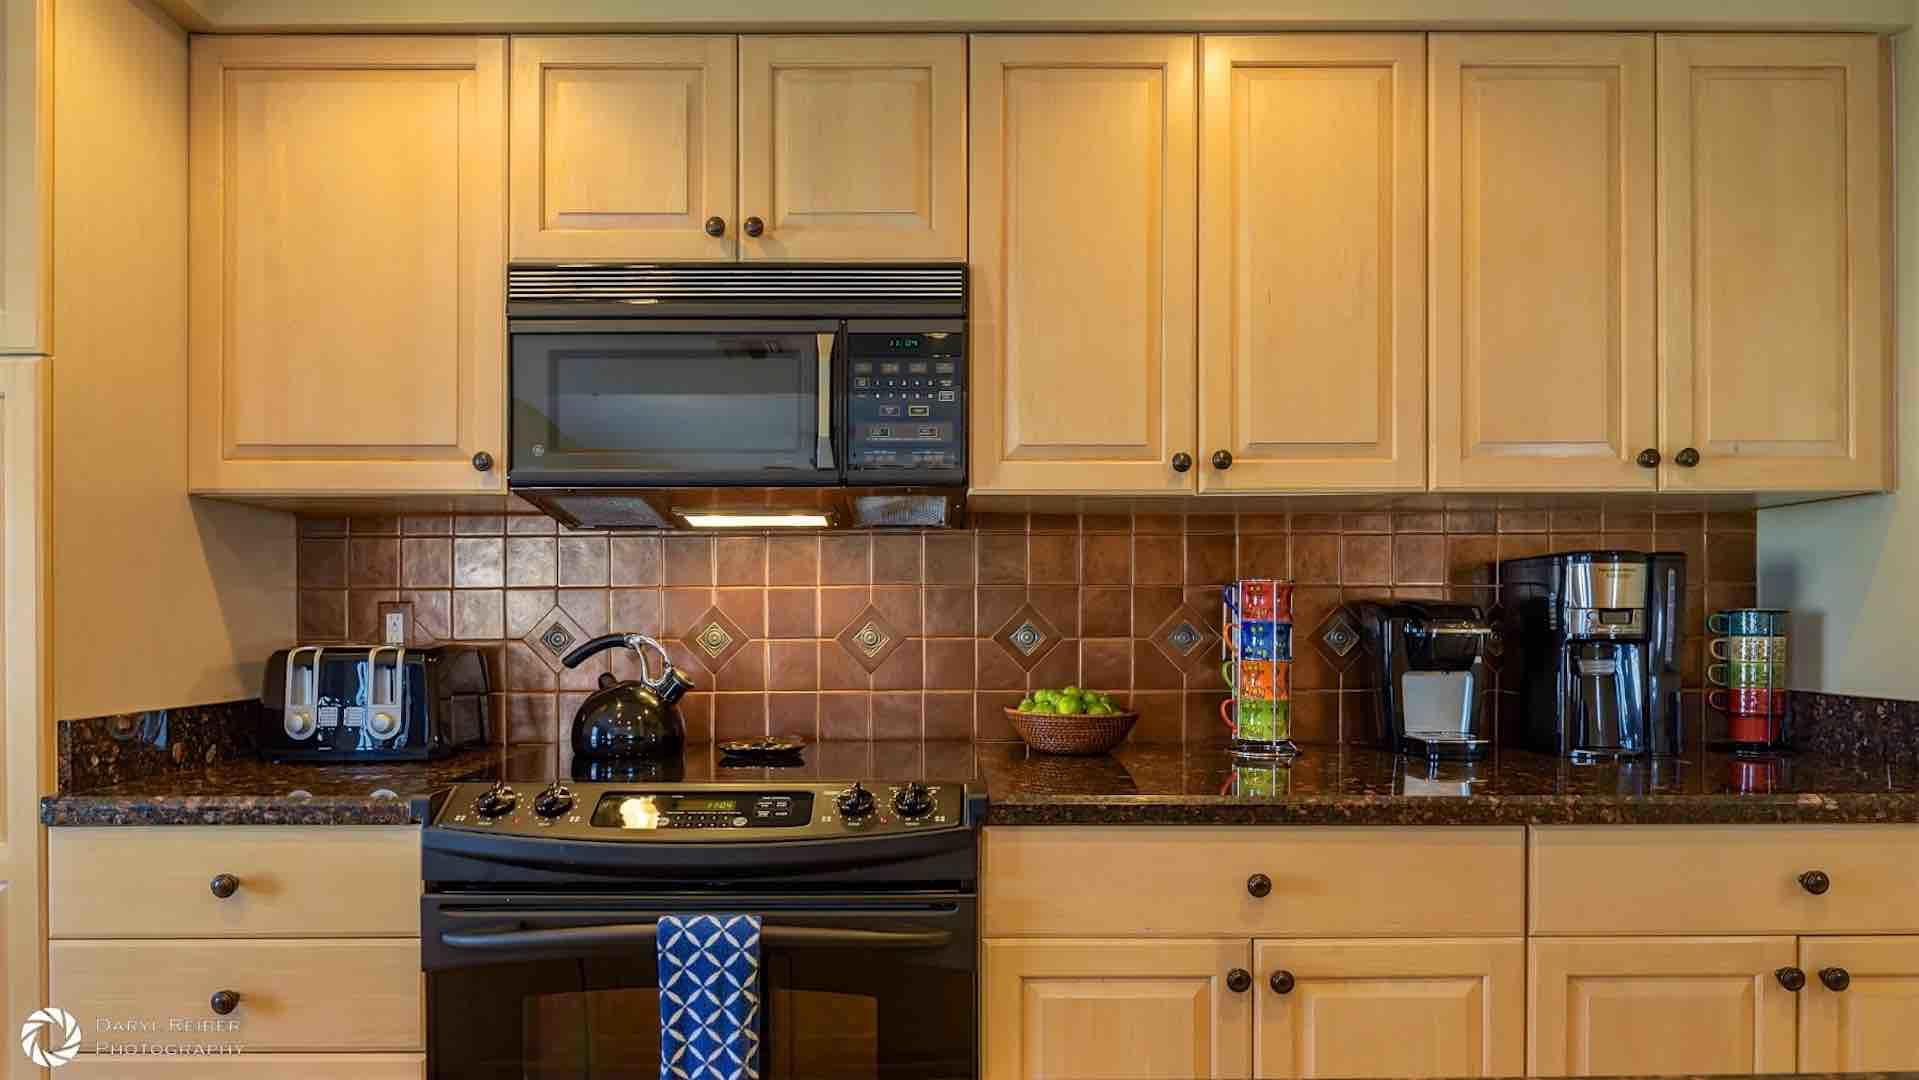 The kitchen has plenty of counter and cabinet space...